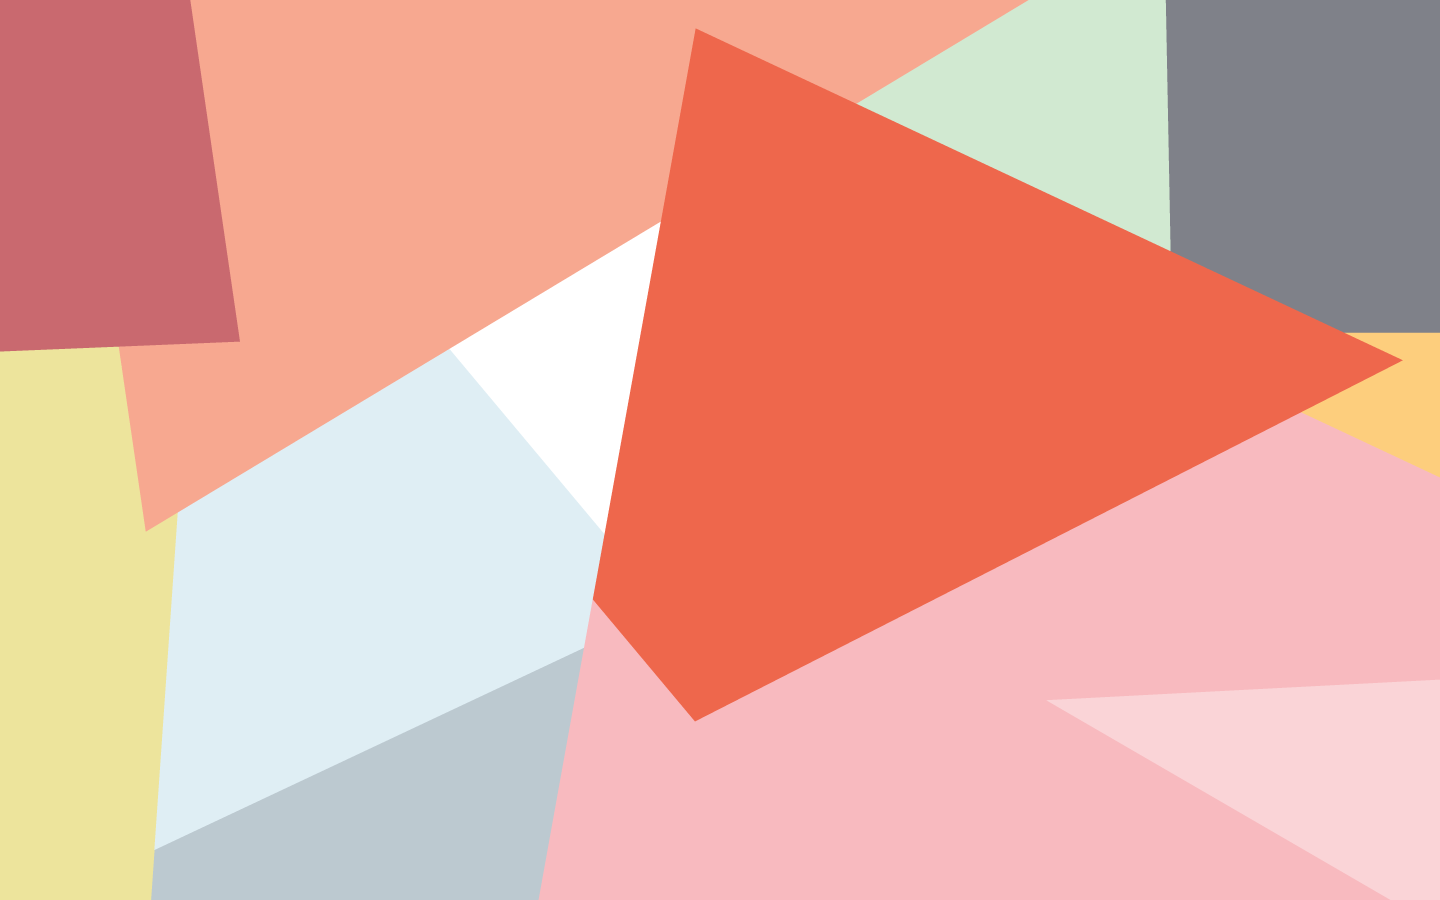 Free Download Images Geometric Abstract Desktop Wallpaper